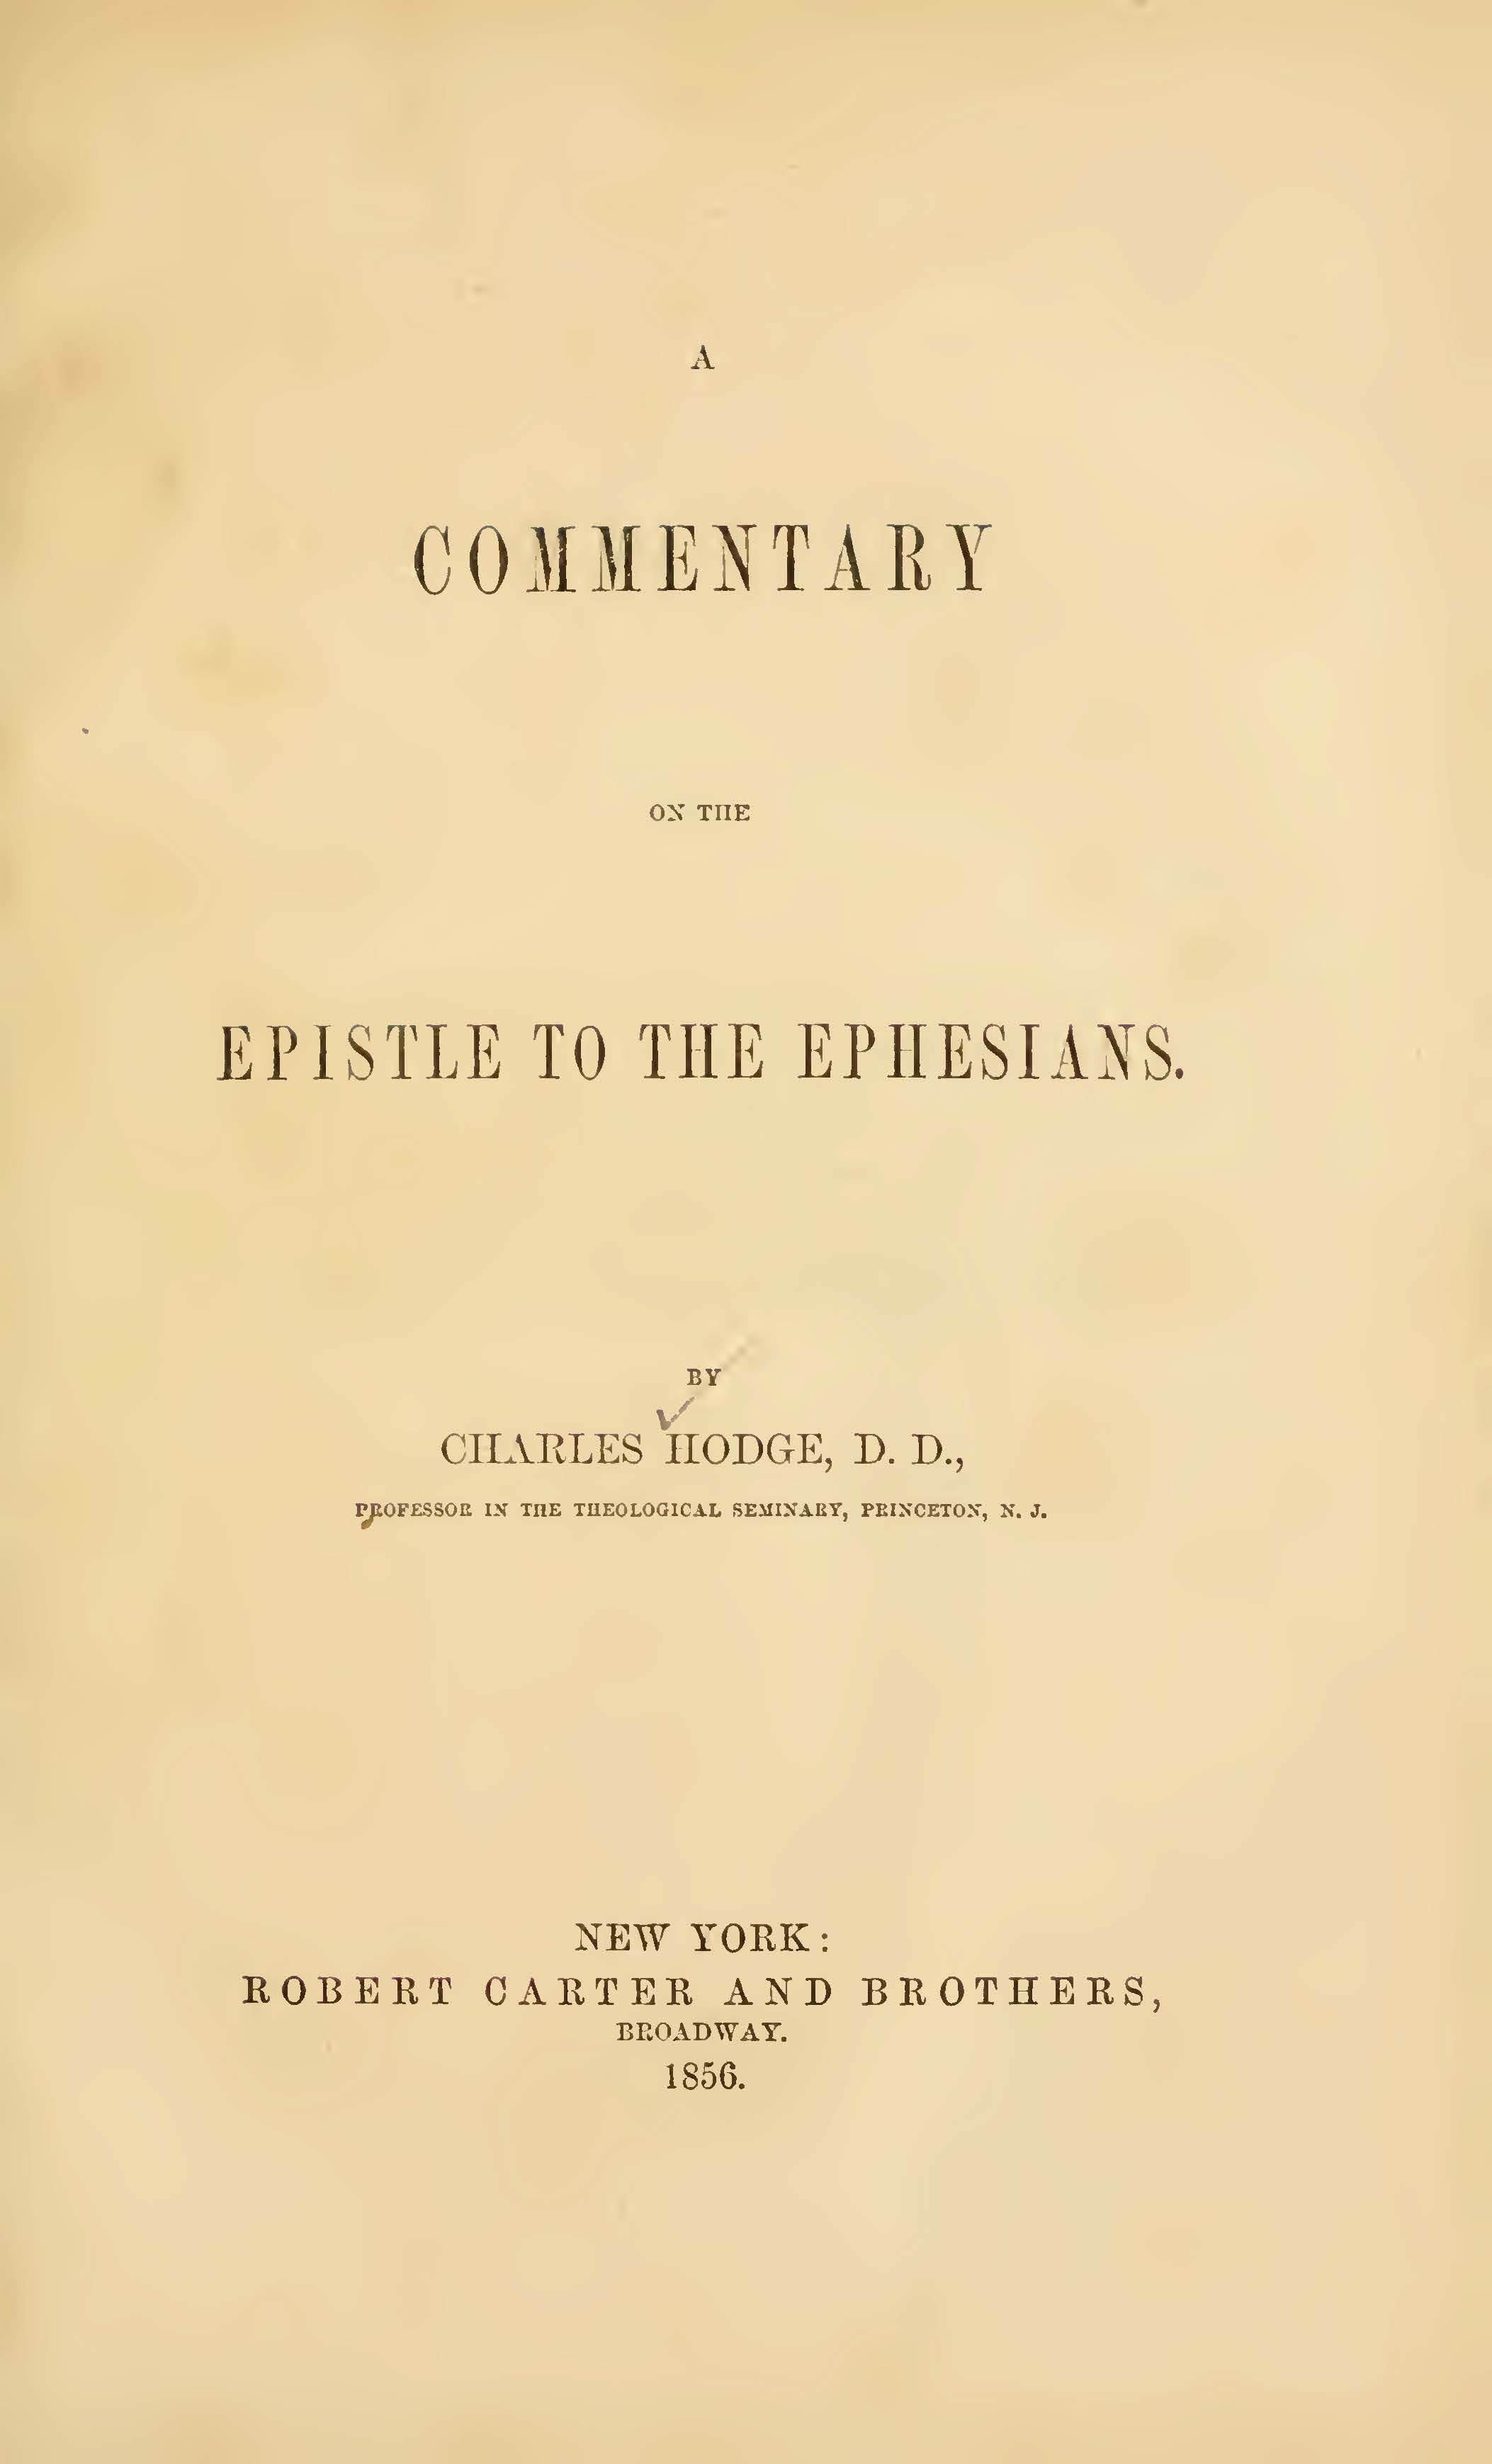 Hodge, Charles, A Commentary on the Epistle to the Ephesians Title Page.jpg